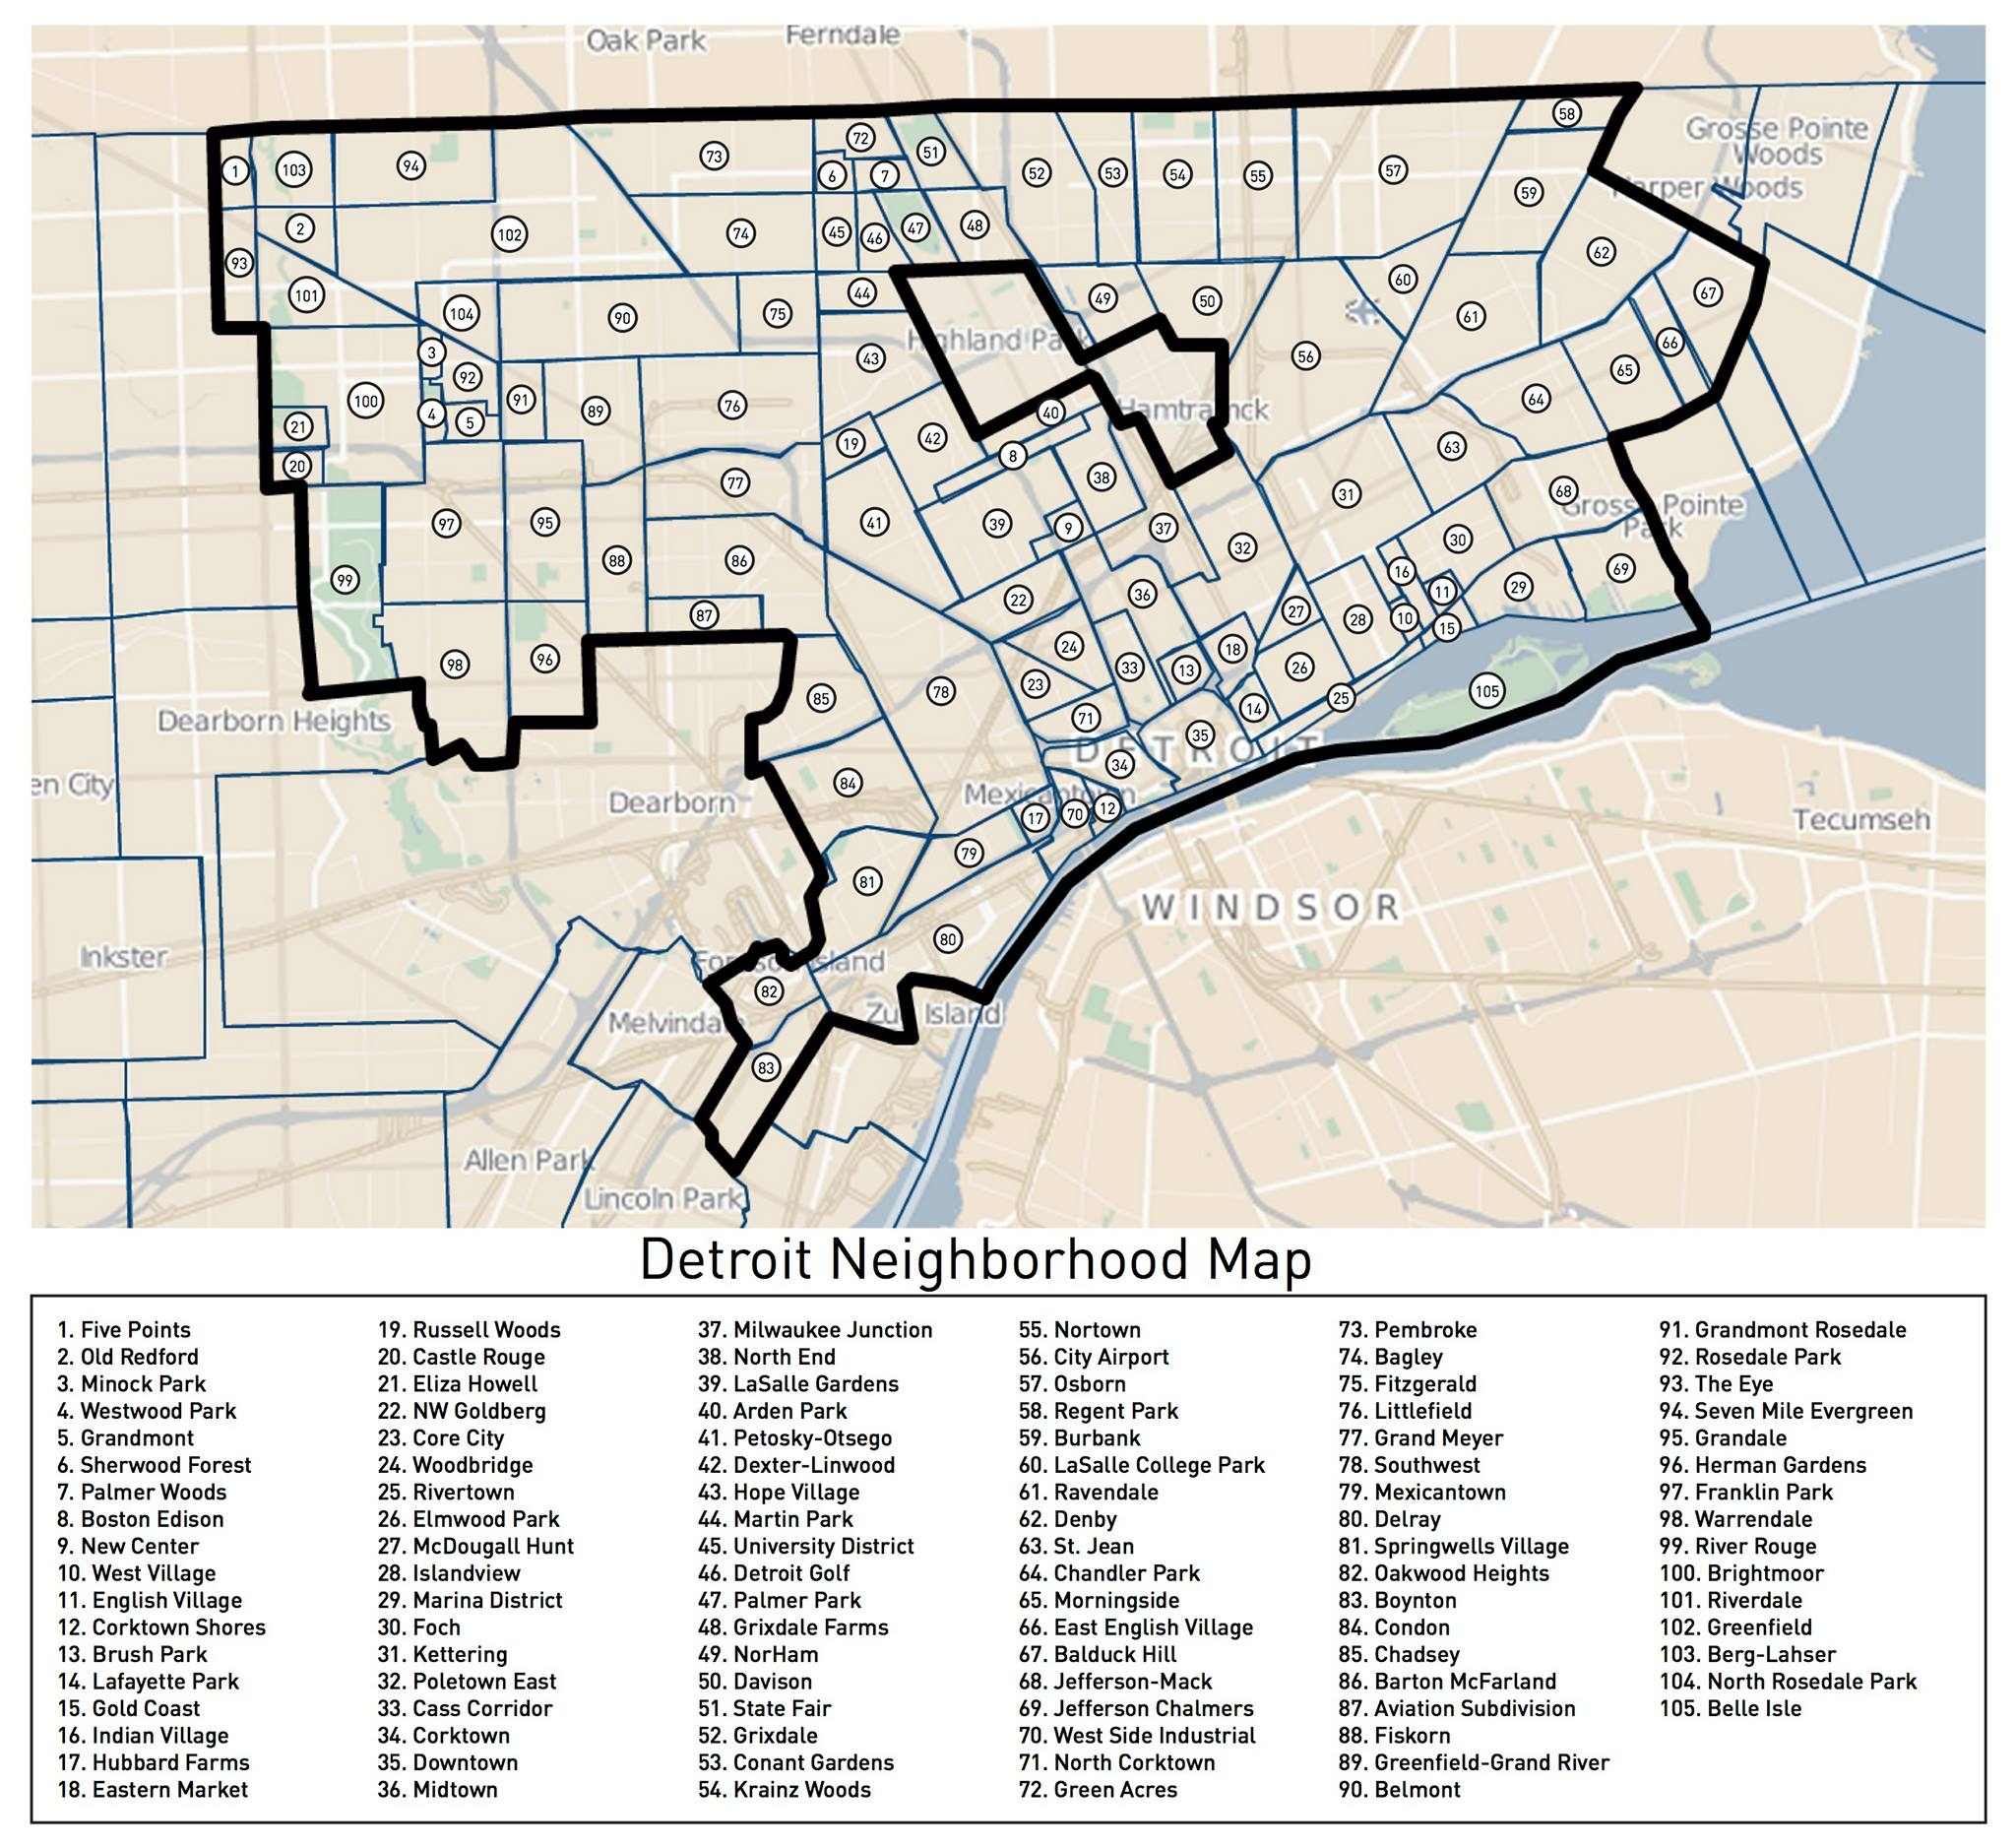 Loveland's Detroit Neighborhoods Map | DETROITography